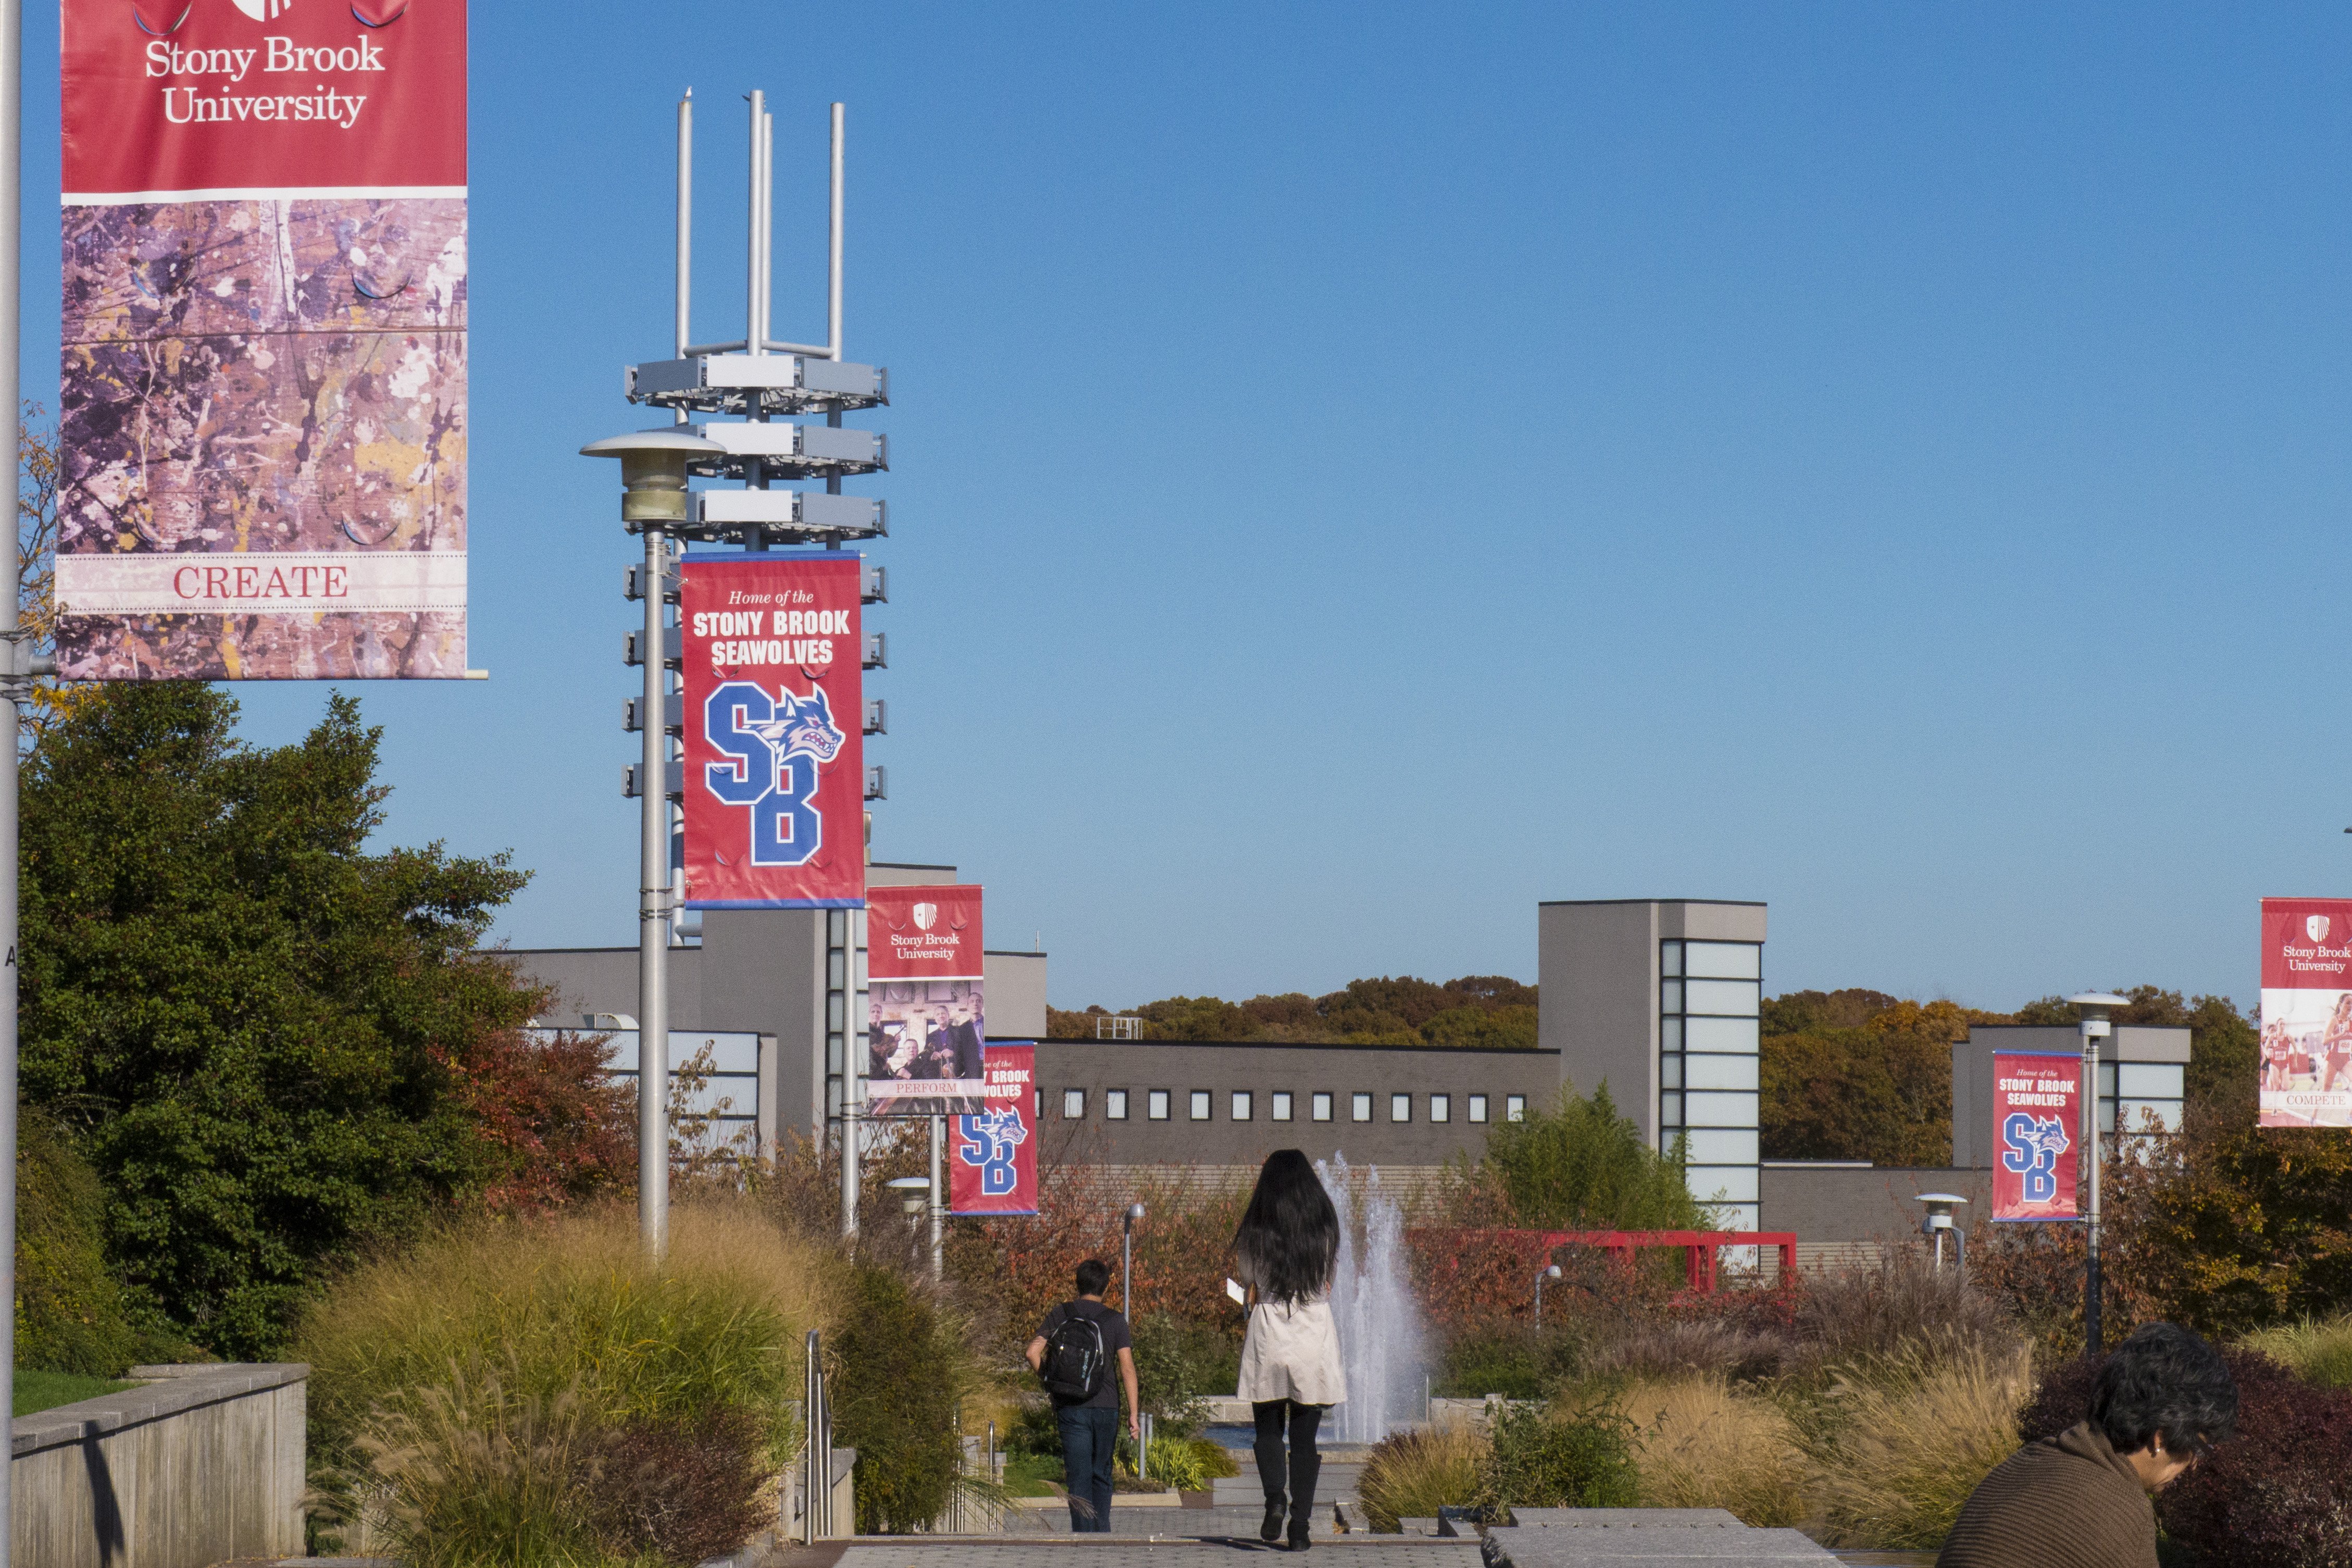 The state university of new york at stony brook-8611